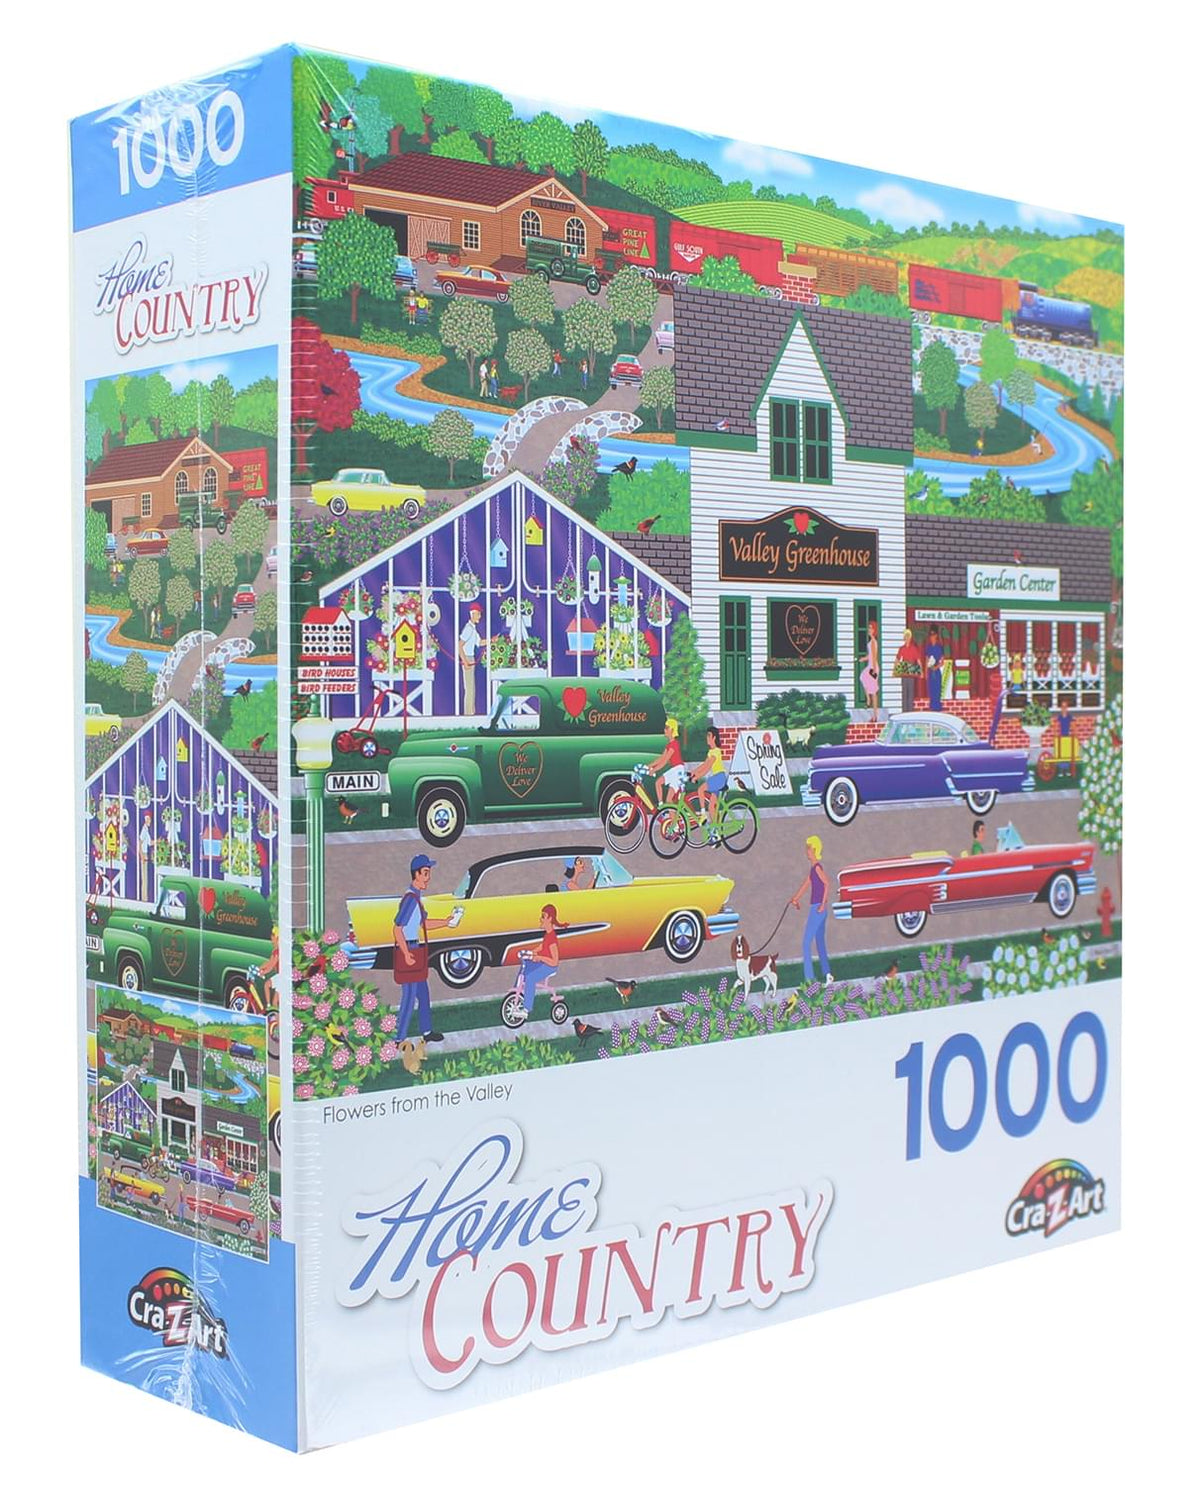 Flowers from the Valley 1000 Piece Jigsaw Puzzle